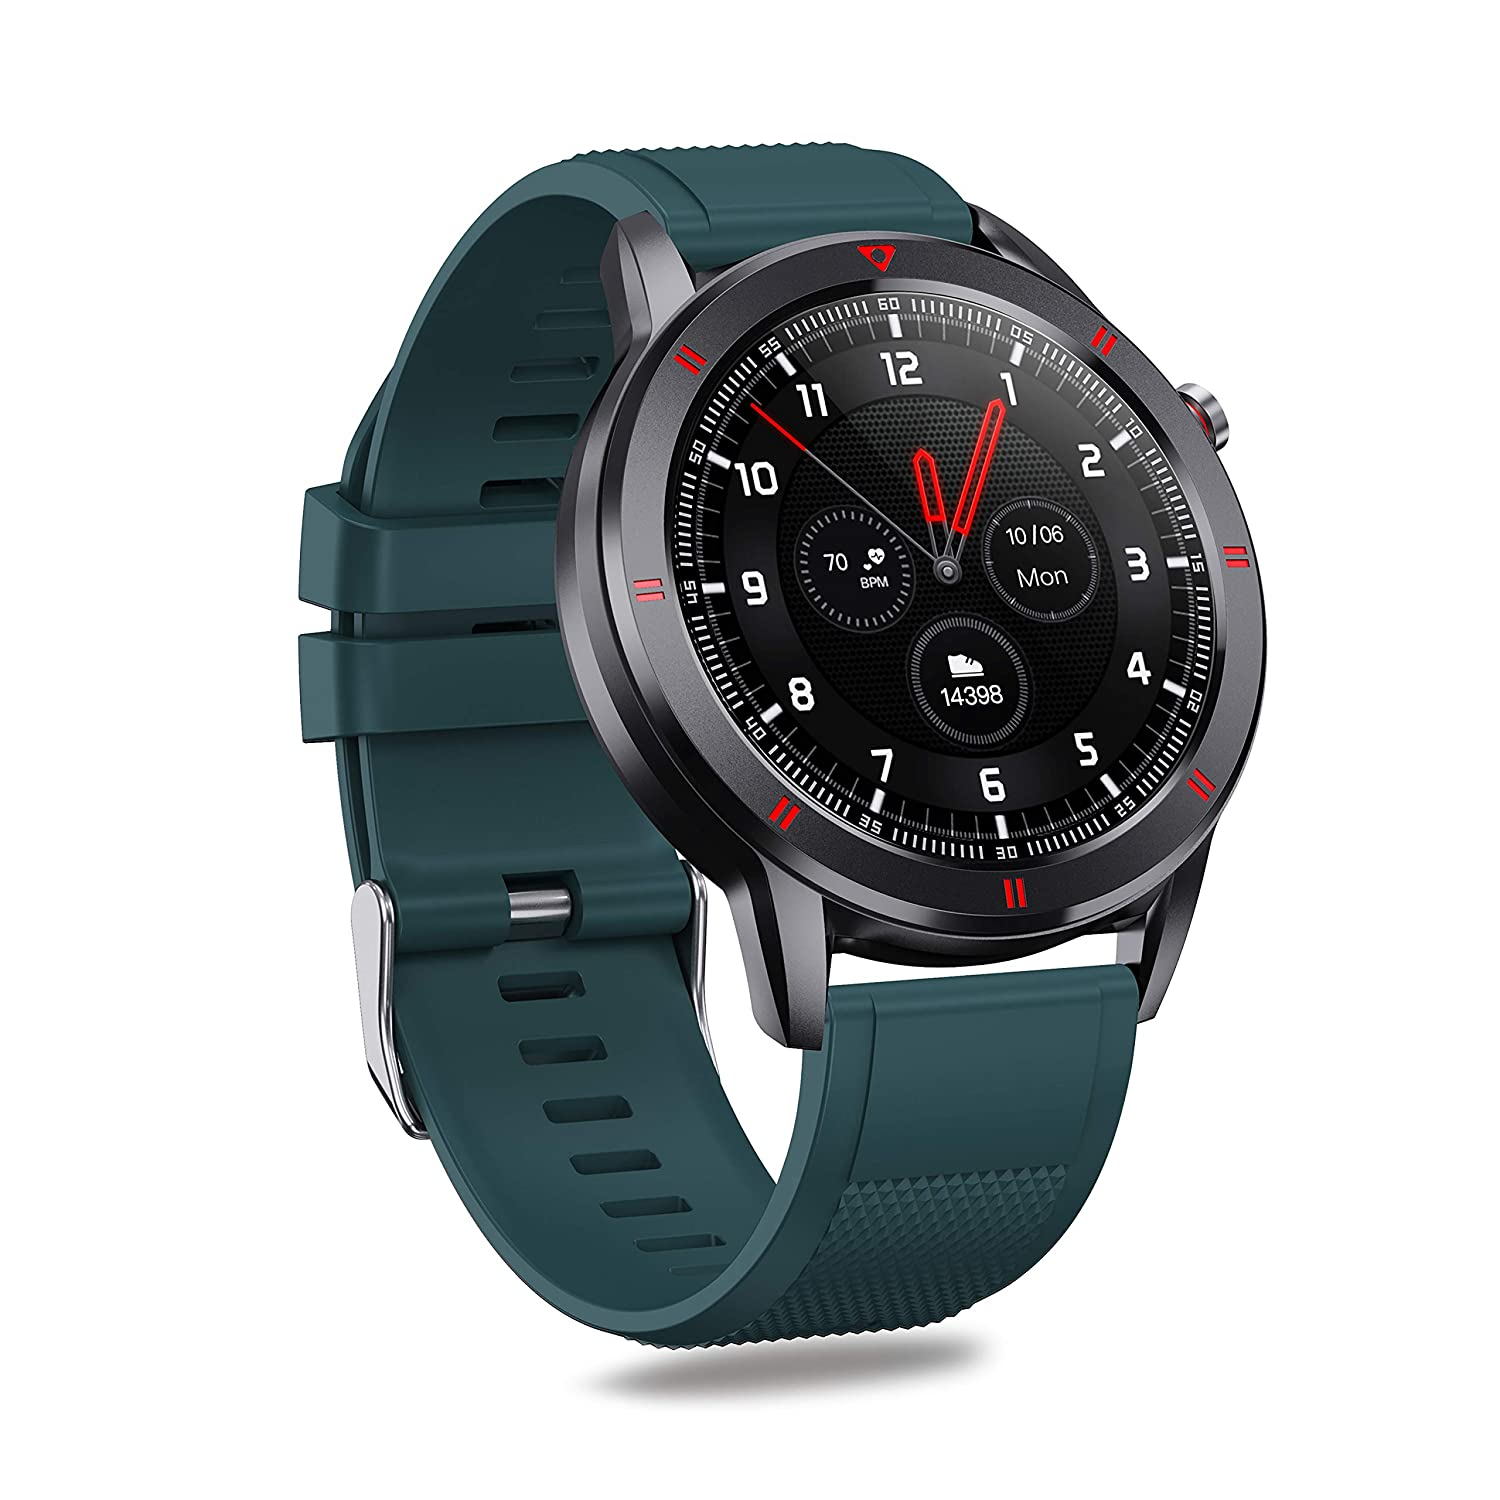 Best AQFIT W15 Fitness smartwatch under 3000 in India